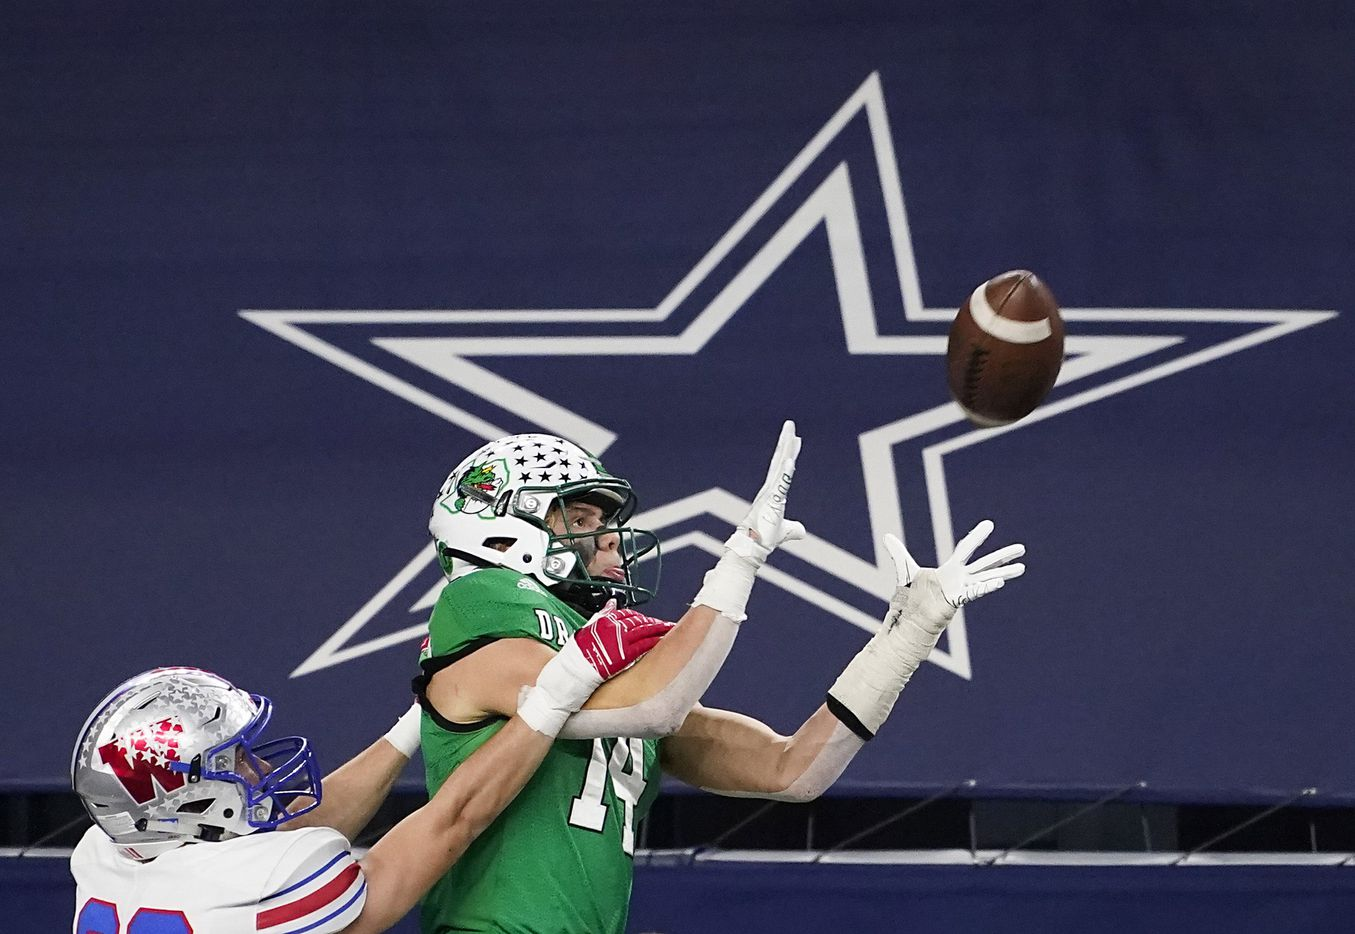 Austin Westlake defensive back Beau Breathard (23) breaks up a pass intended for Southlake Carroll wide receiver Brady Boyd (14) during the fourth quarter of the Class 6A Division I state football championship game at AT&T Stadium on Saturday, Jan. 16, 2021, in Arlington, Texas. Westlake won the game 52-34.